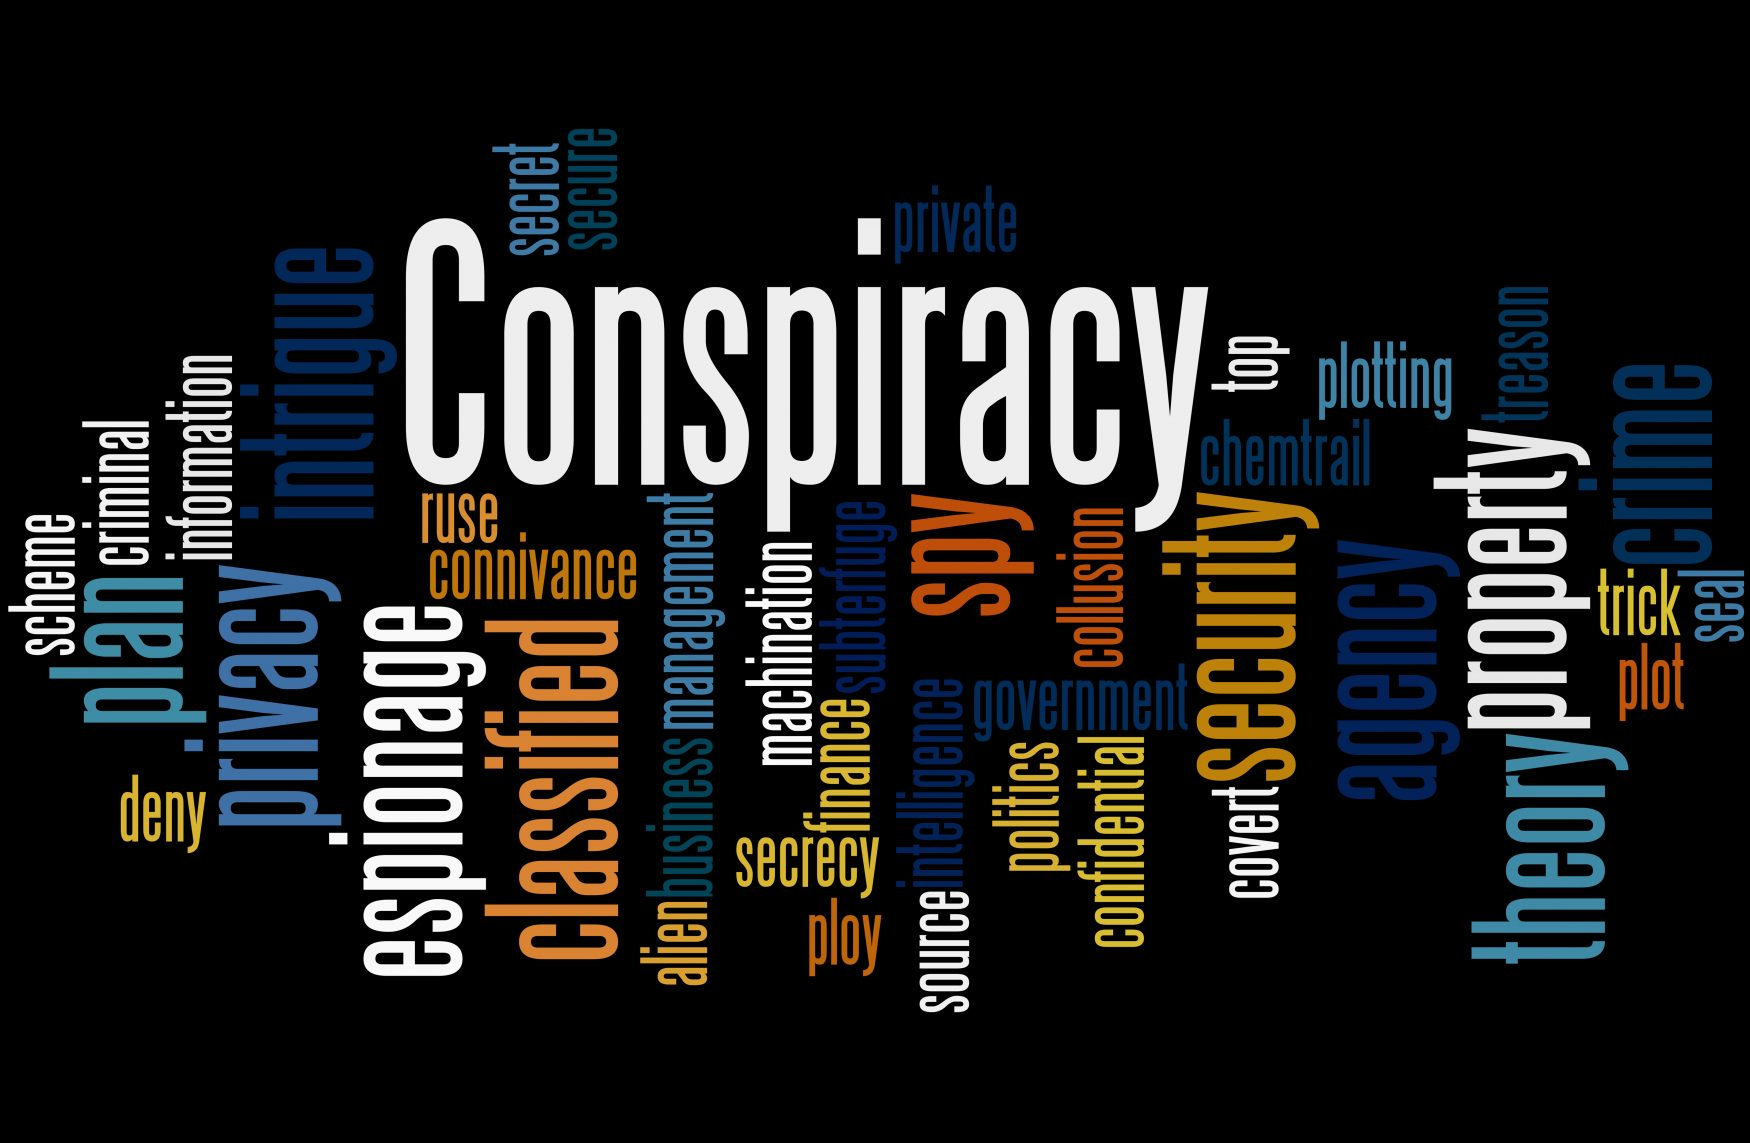 5 Conspiracy Theories That Turned Out To Be True